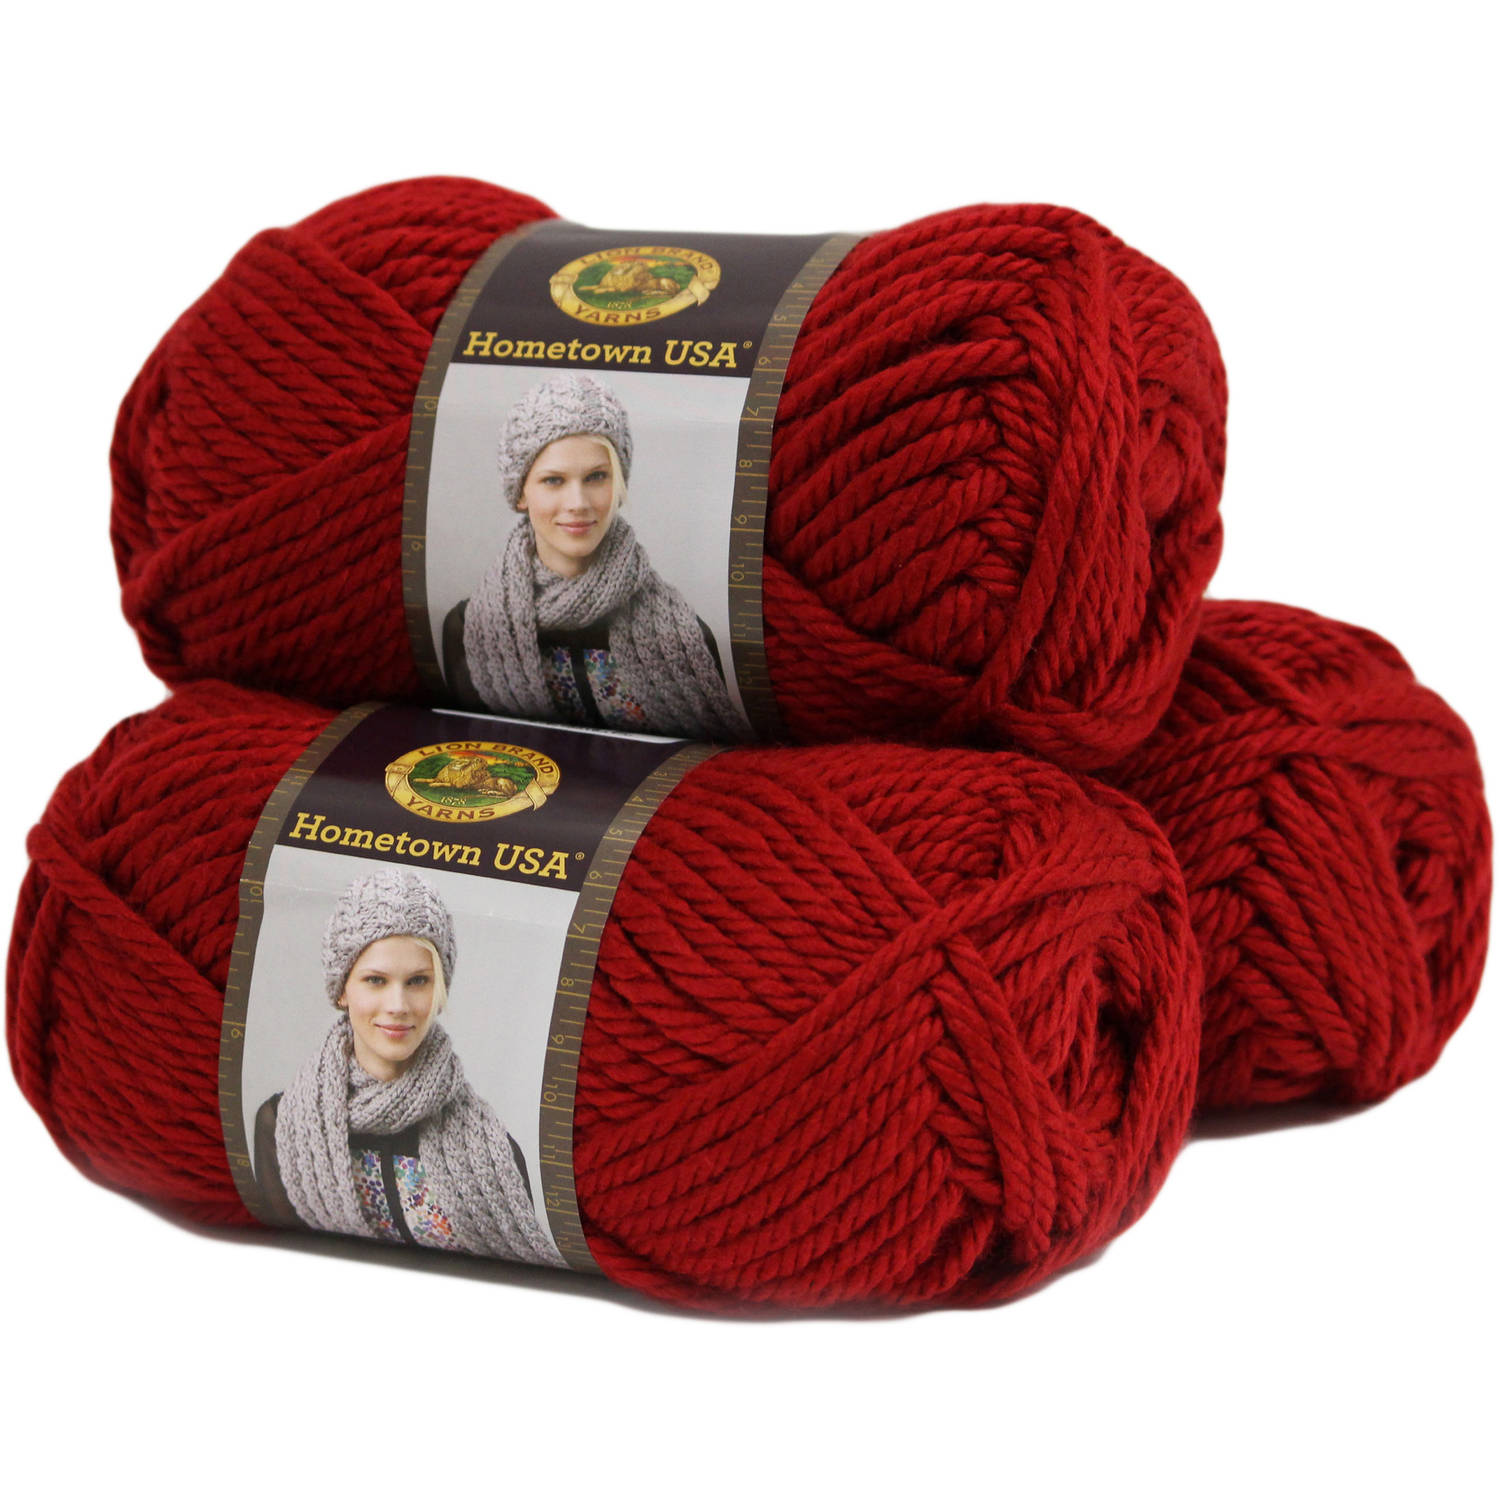 Lion Brand Yarn Hometown USA Acrylic Yarn, 3-Pack